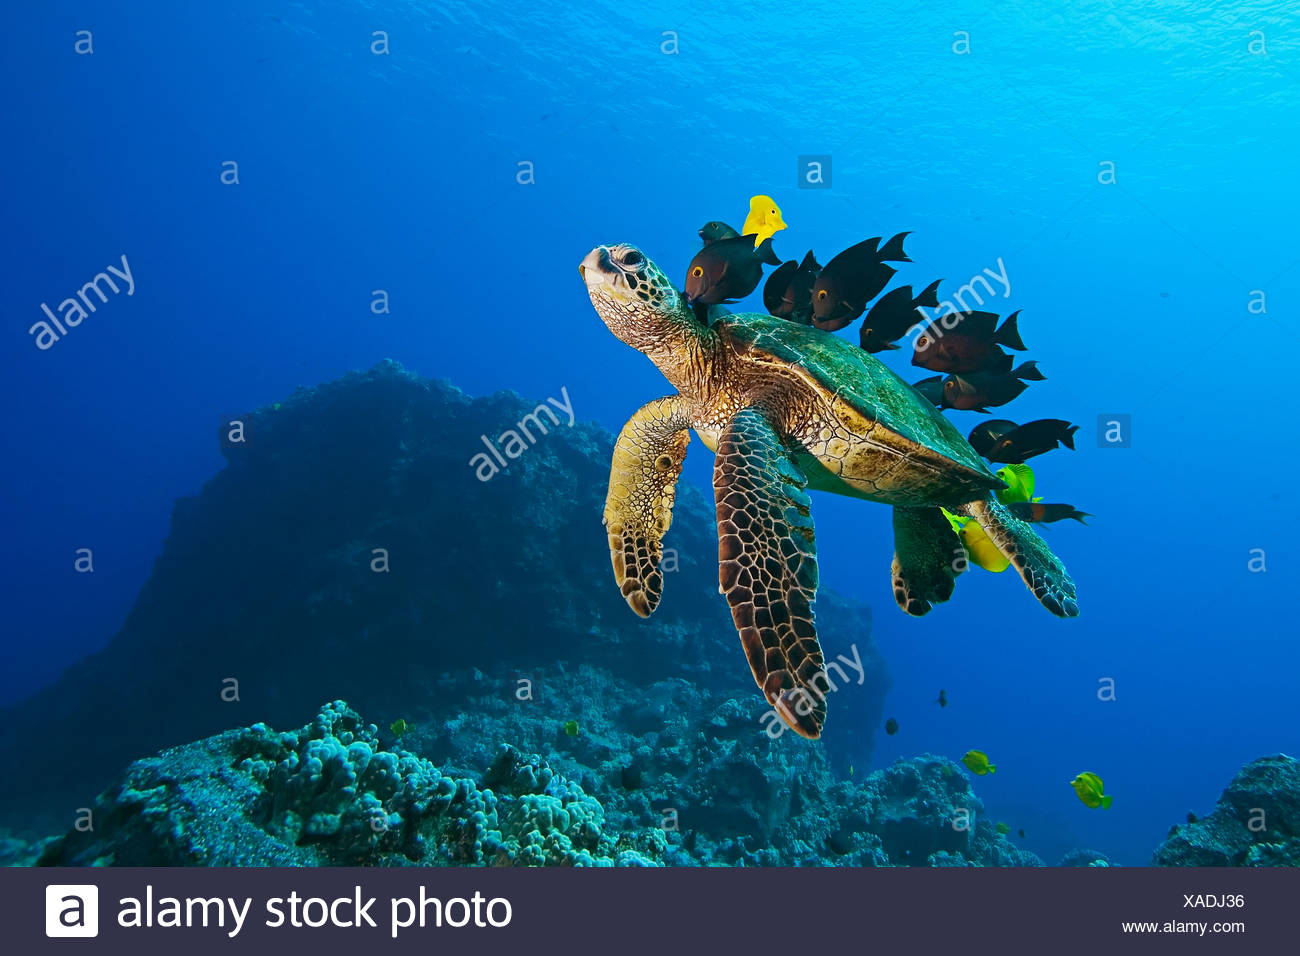 Endangered species, green sea turtle, Chelonia mydas, being cleaned by Yellow tang, Zebrasoma flavescens Stock Photo